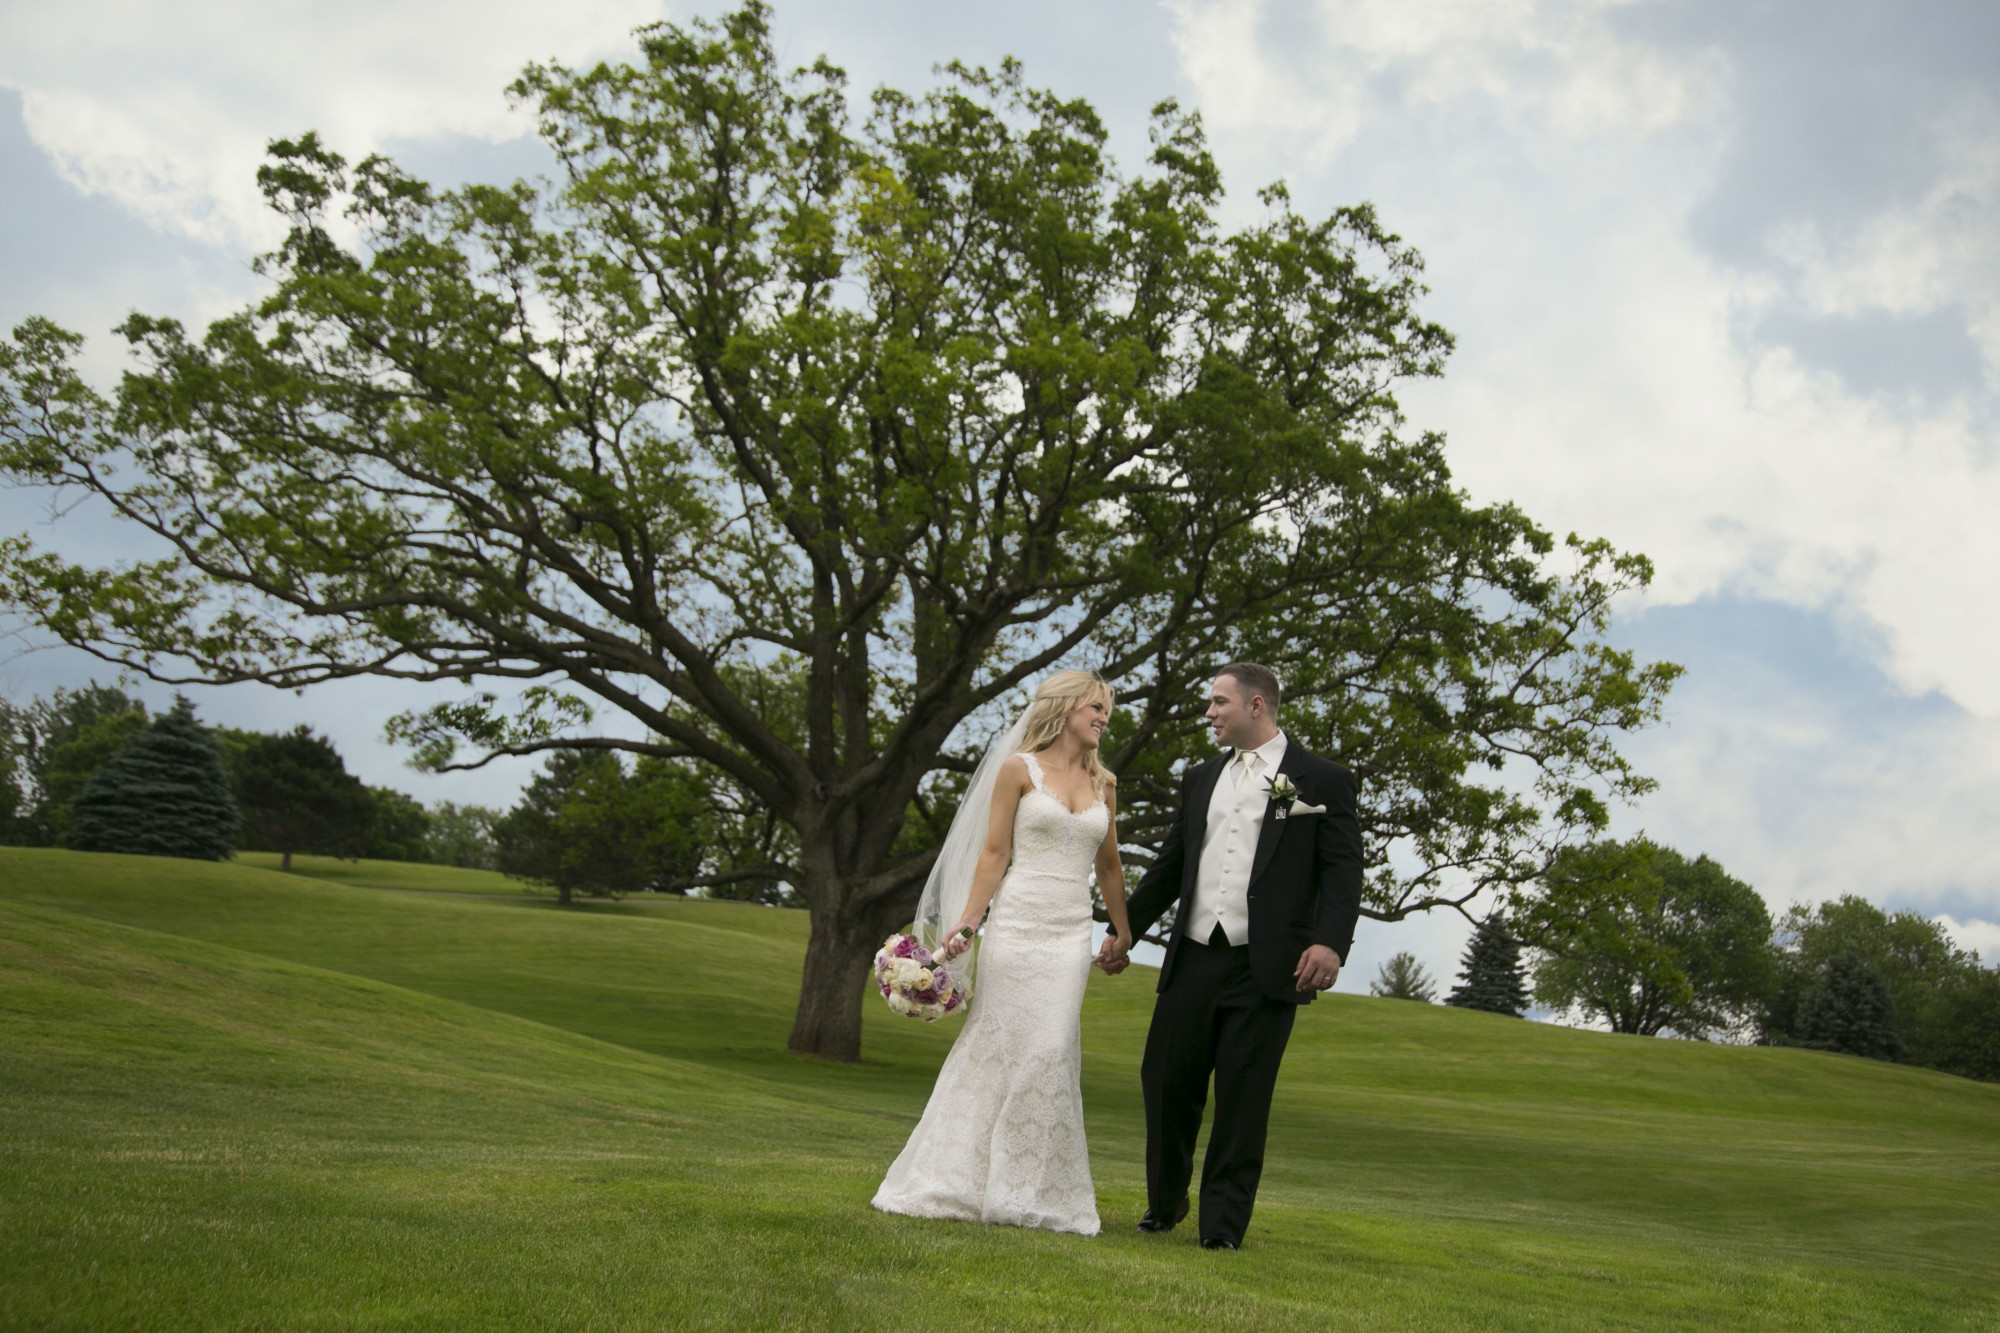 Bride and groom with tree